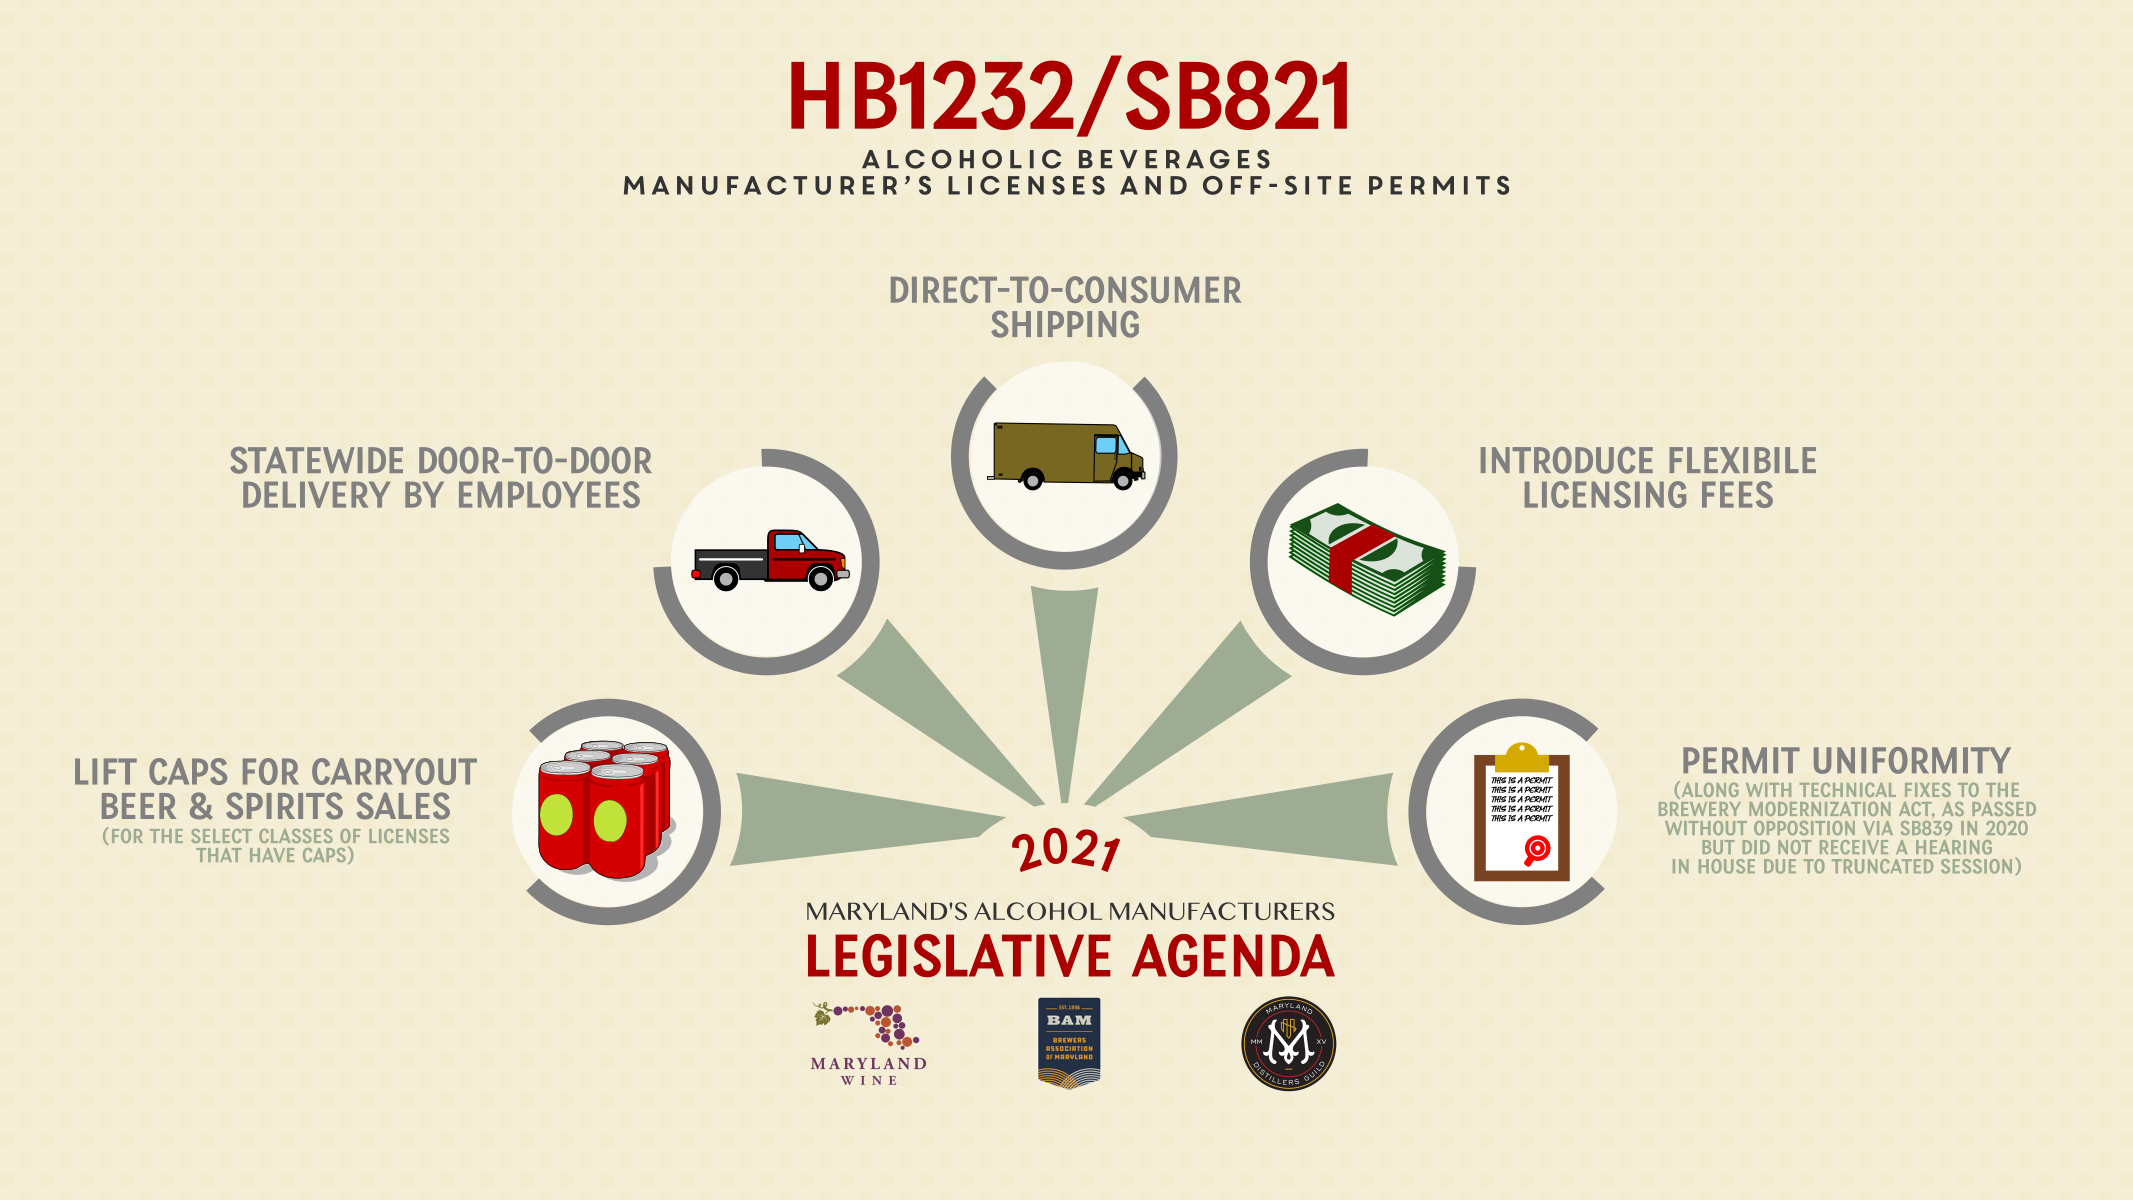 Maryland General Assembly OKs extension of direct-to-consumer alcohol delivery – Baltimore Business Journal